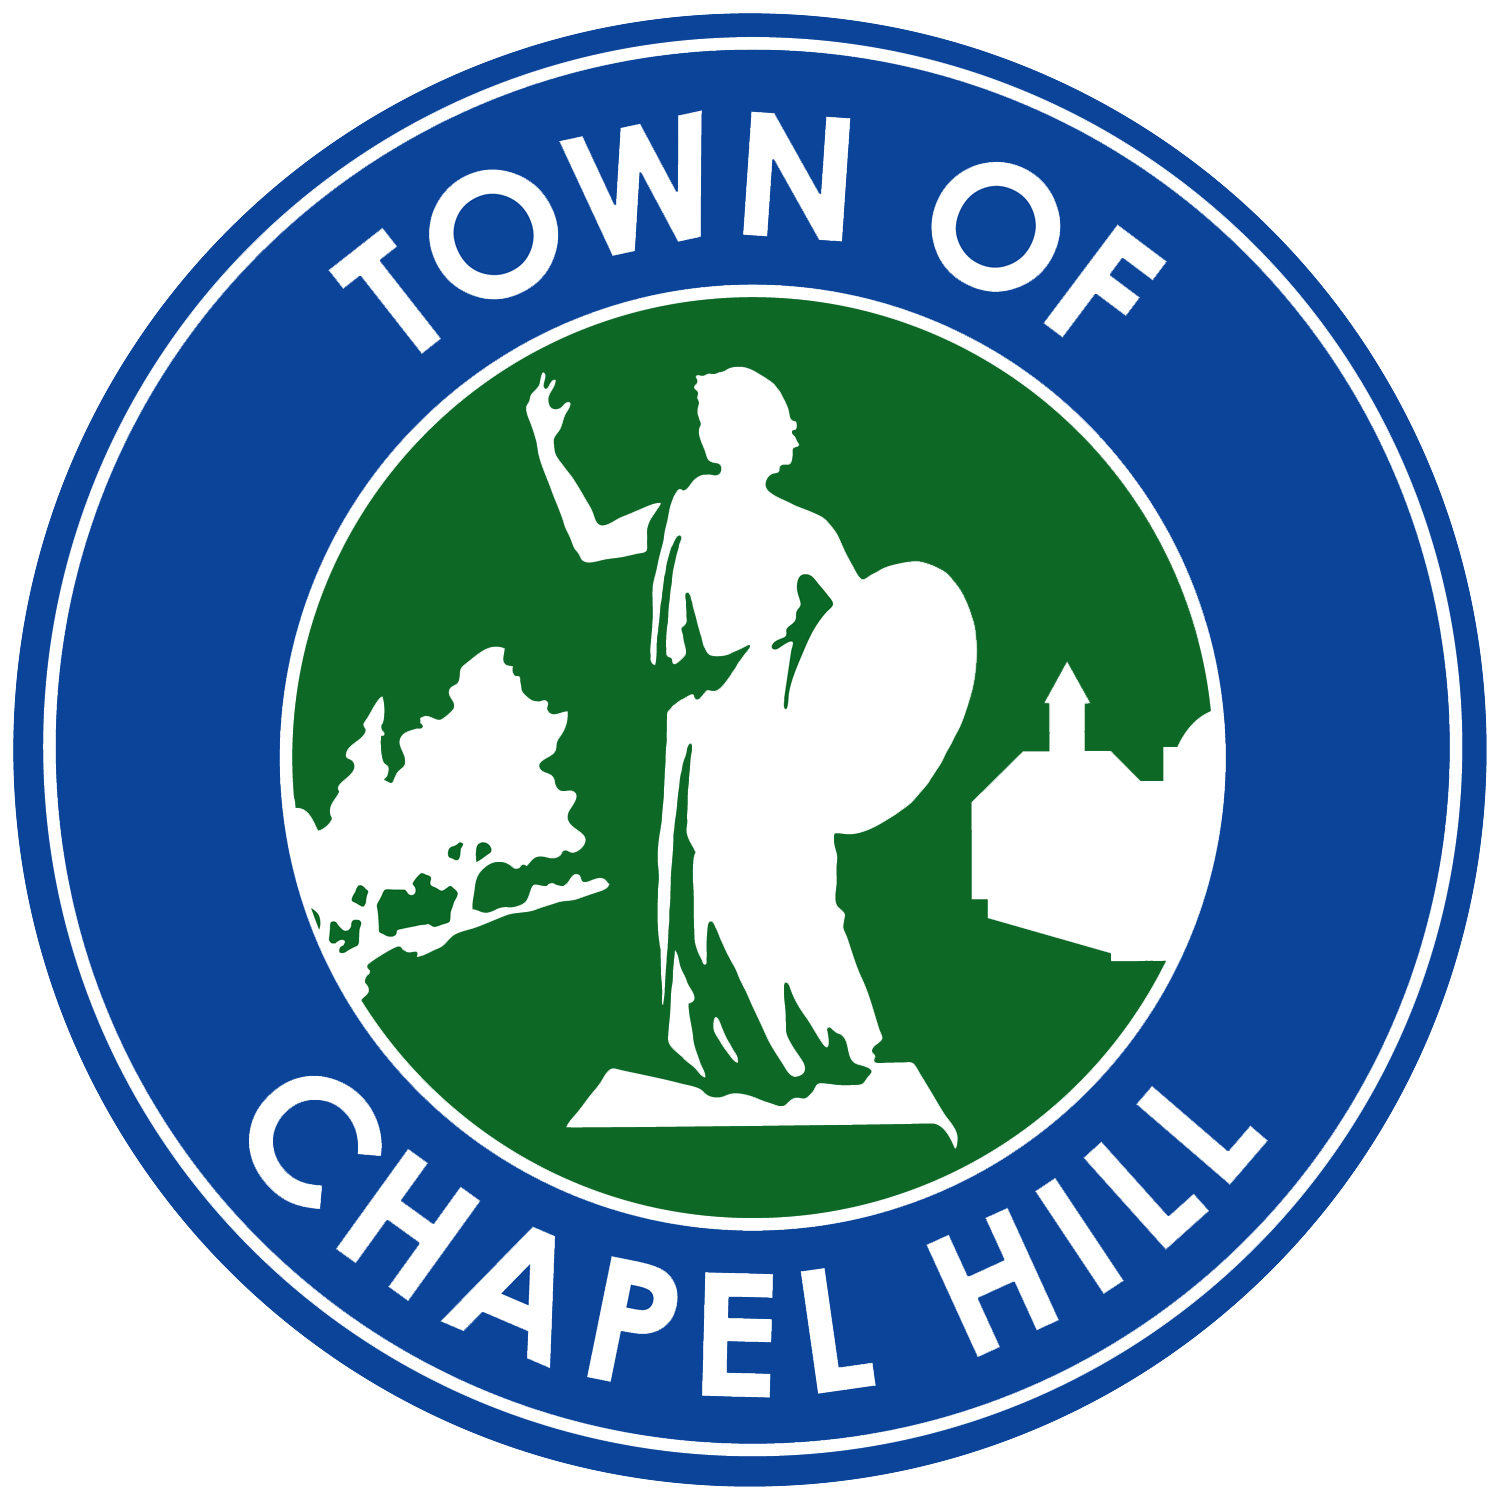 Chapel Hill Coal Ash Remediation Project